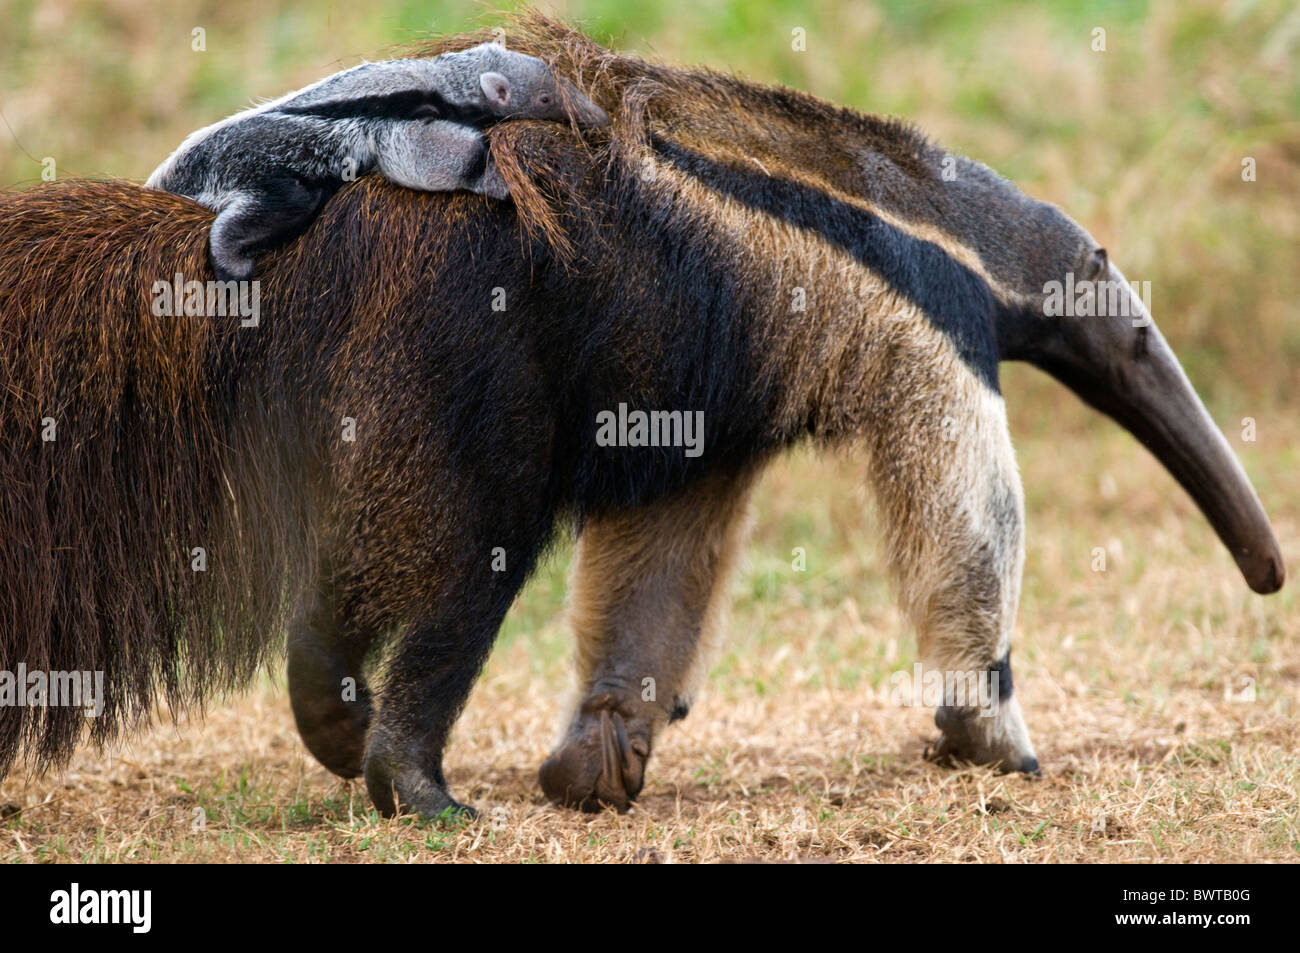 giant ant eater - Stock Image